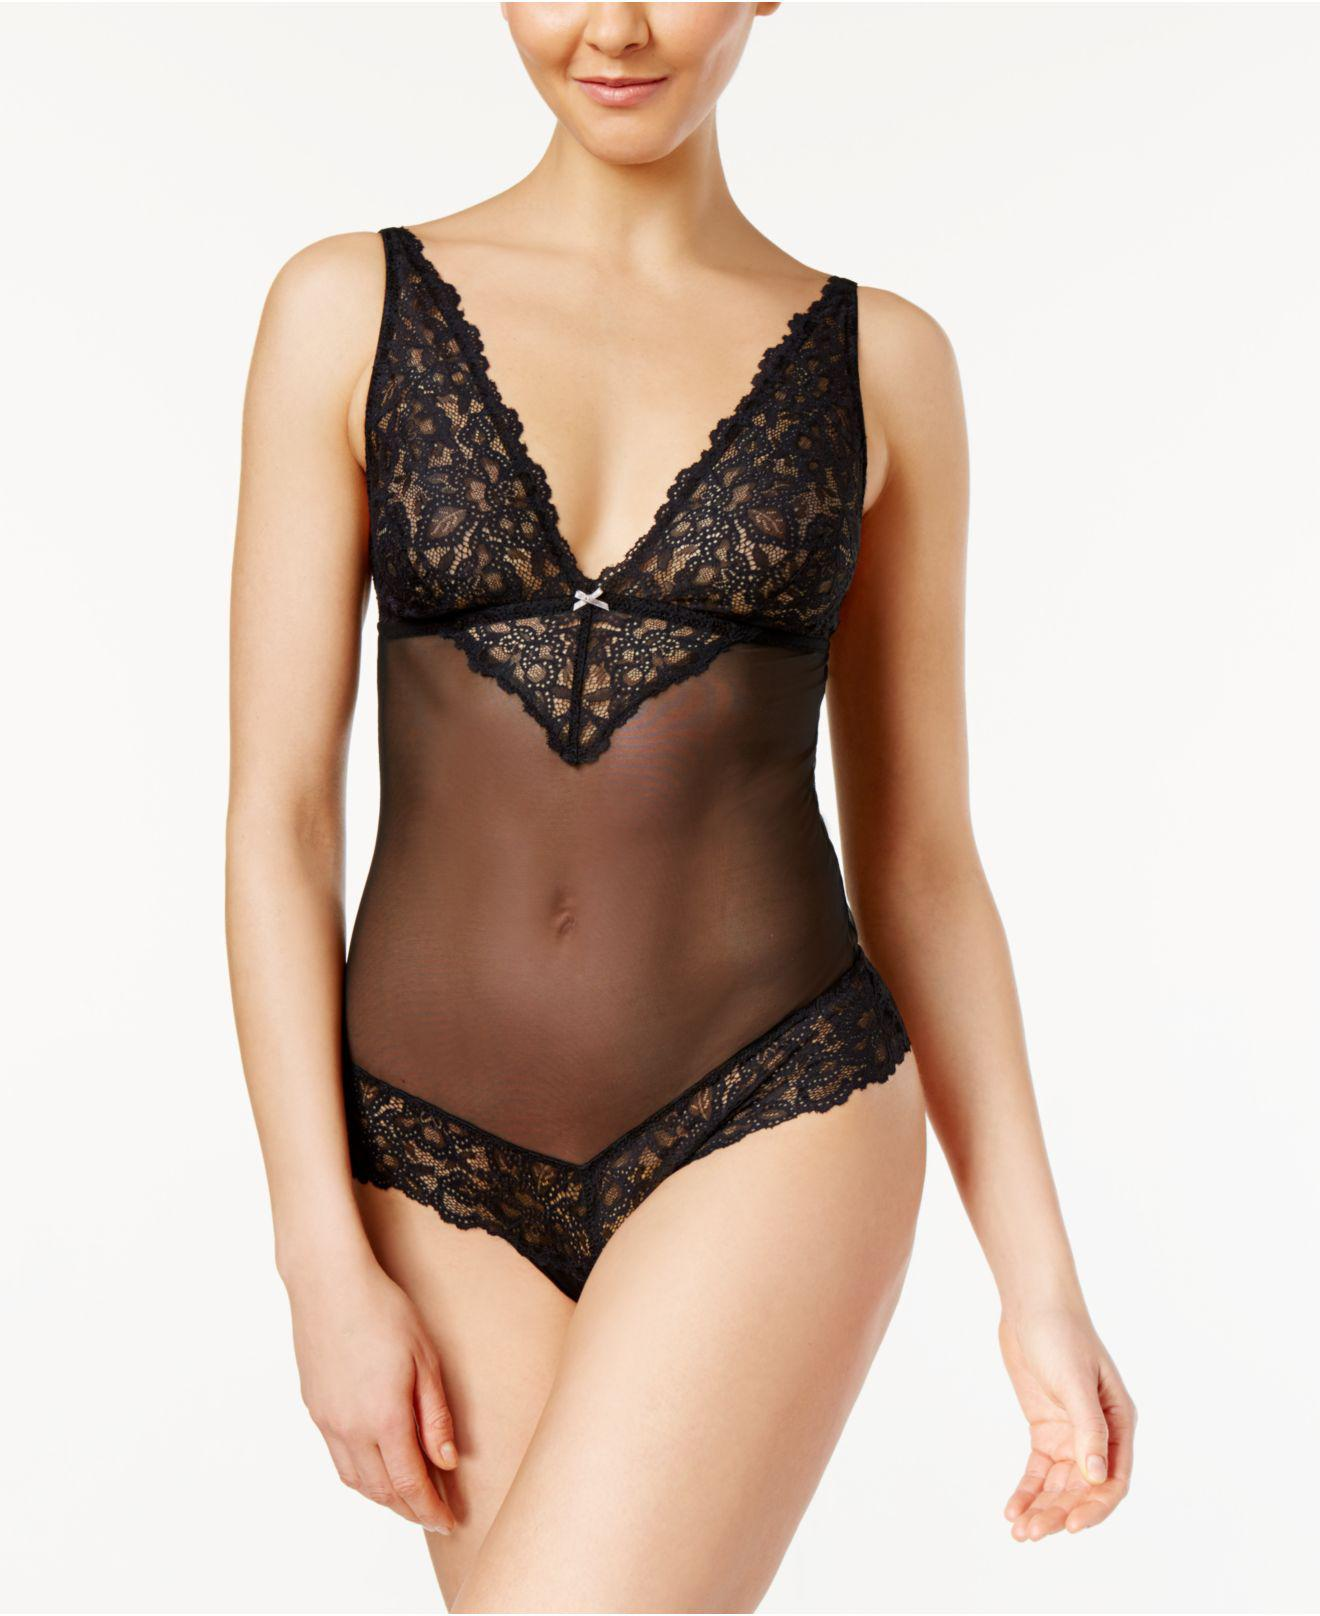 db1f2c47a1535 Lyst - B.tempt d Charming Mesh And Lace Bodysuit 936232 in Black